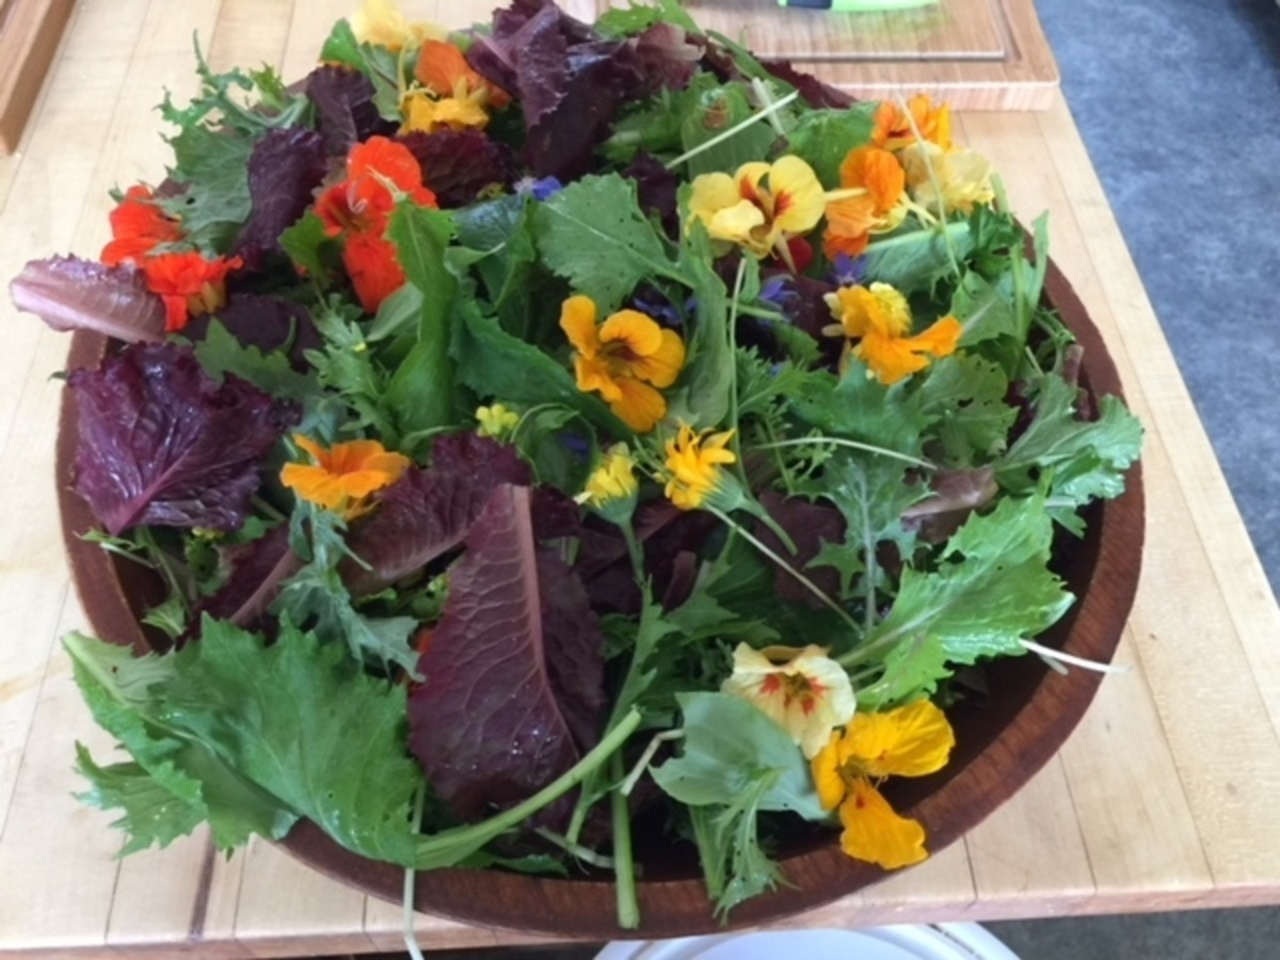 Photo of colorful garden salad